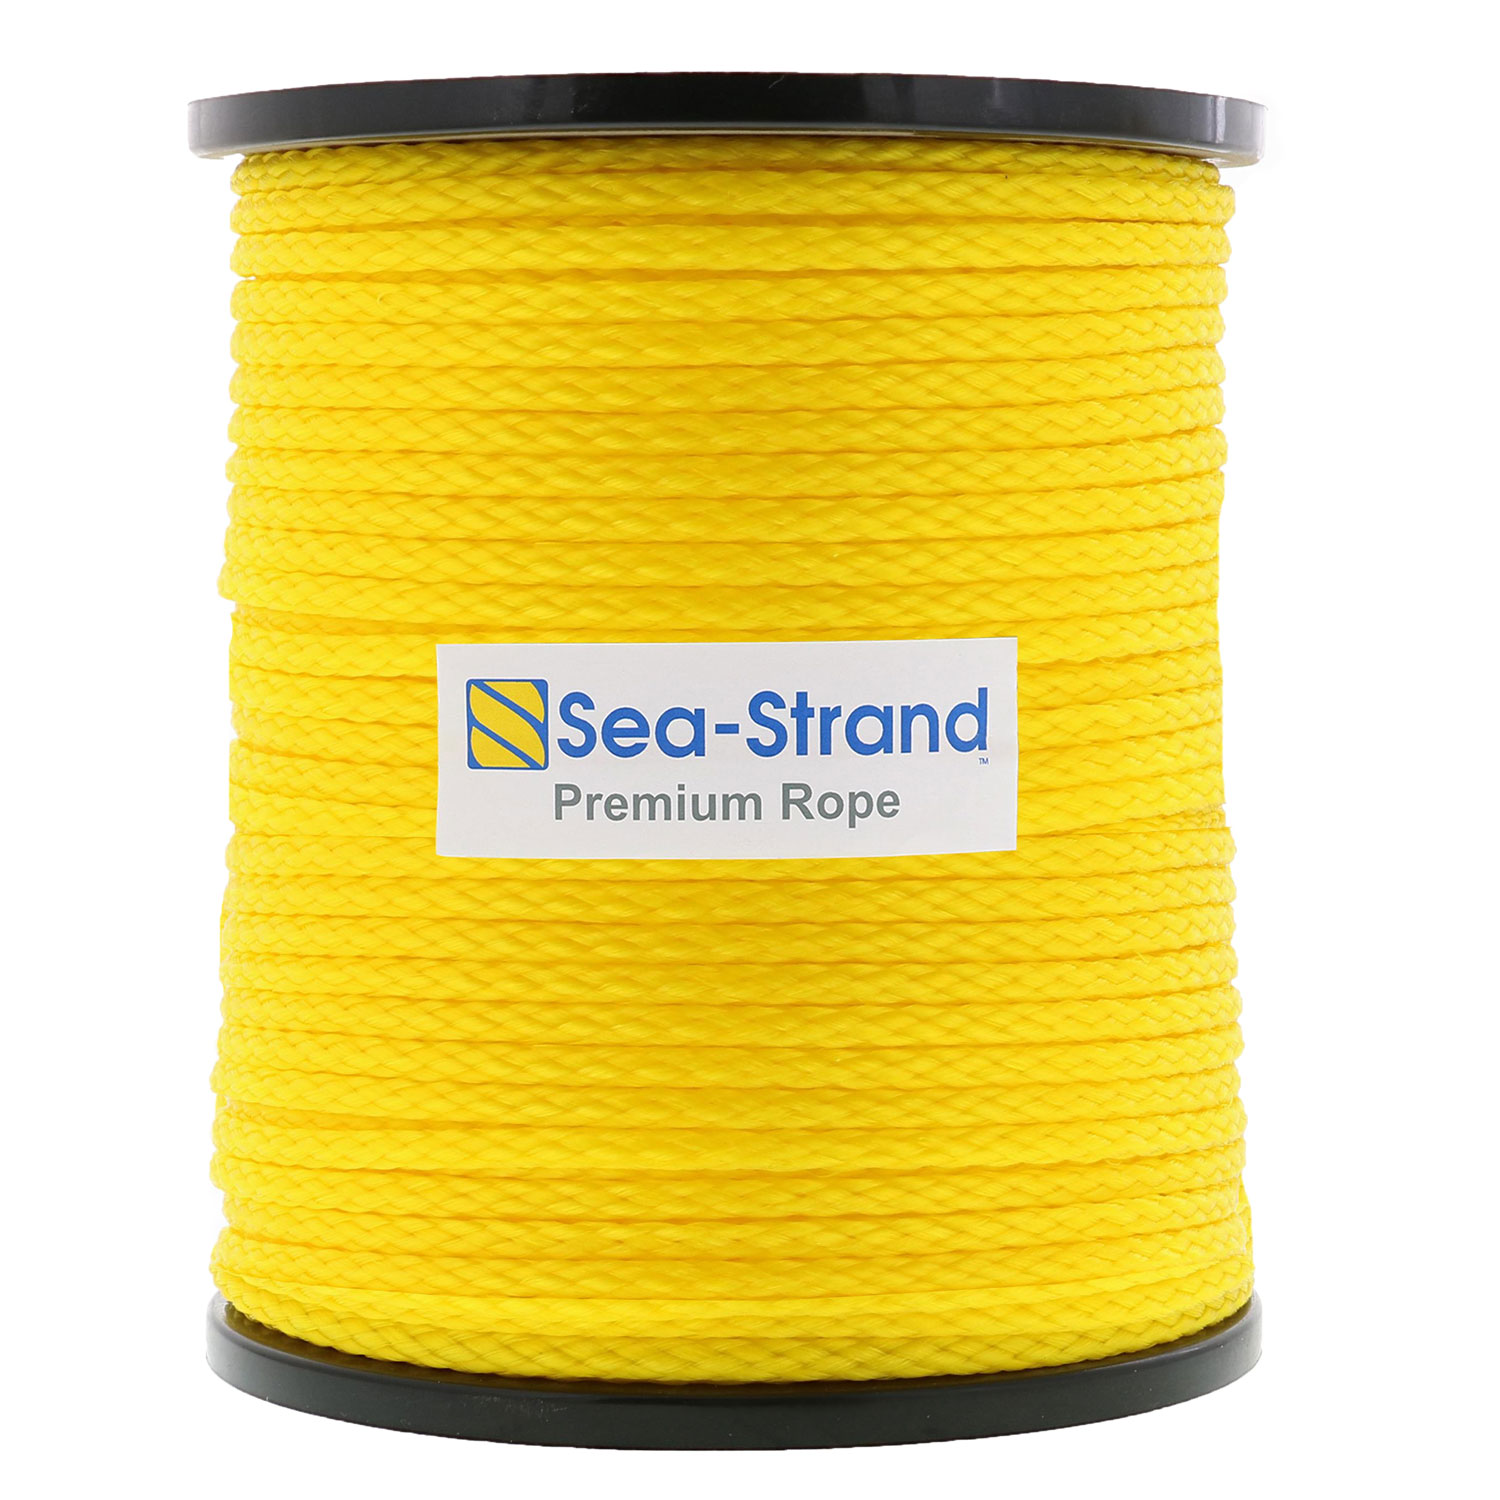 "3/8"" x 1000' Reel, Yellow, Hollow Braid Polypropylene Rope Image 1"